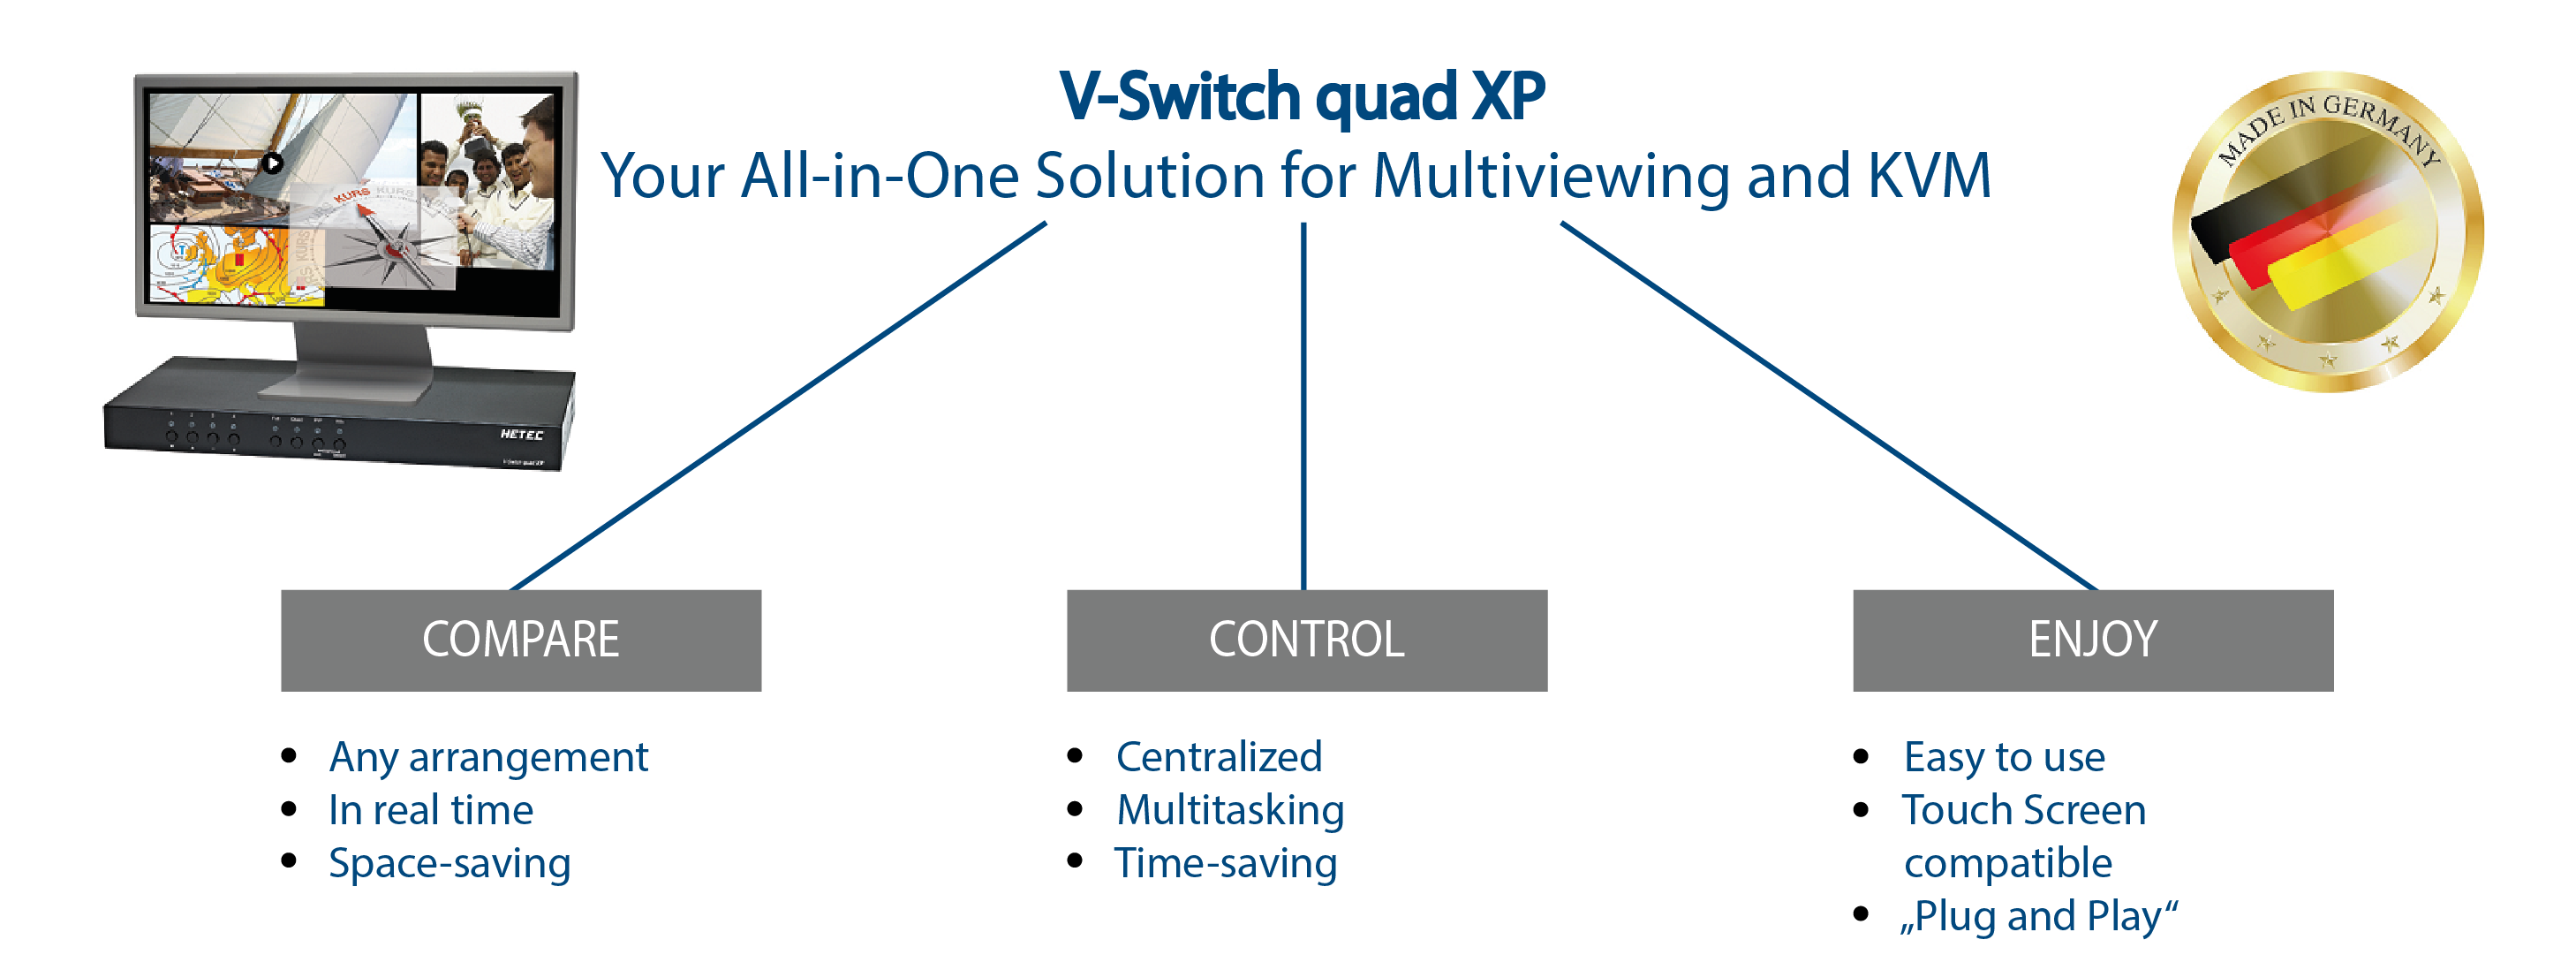 Hetec Multiviewing & KVM | V-Switch Quad II | V-Switch Quad XP - ITM